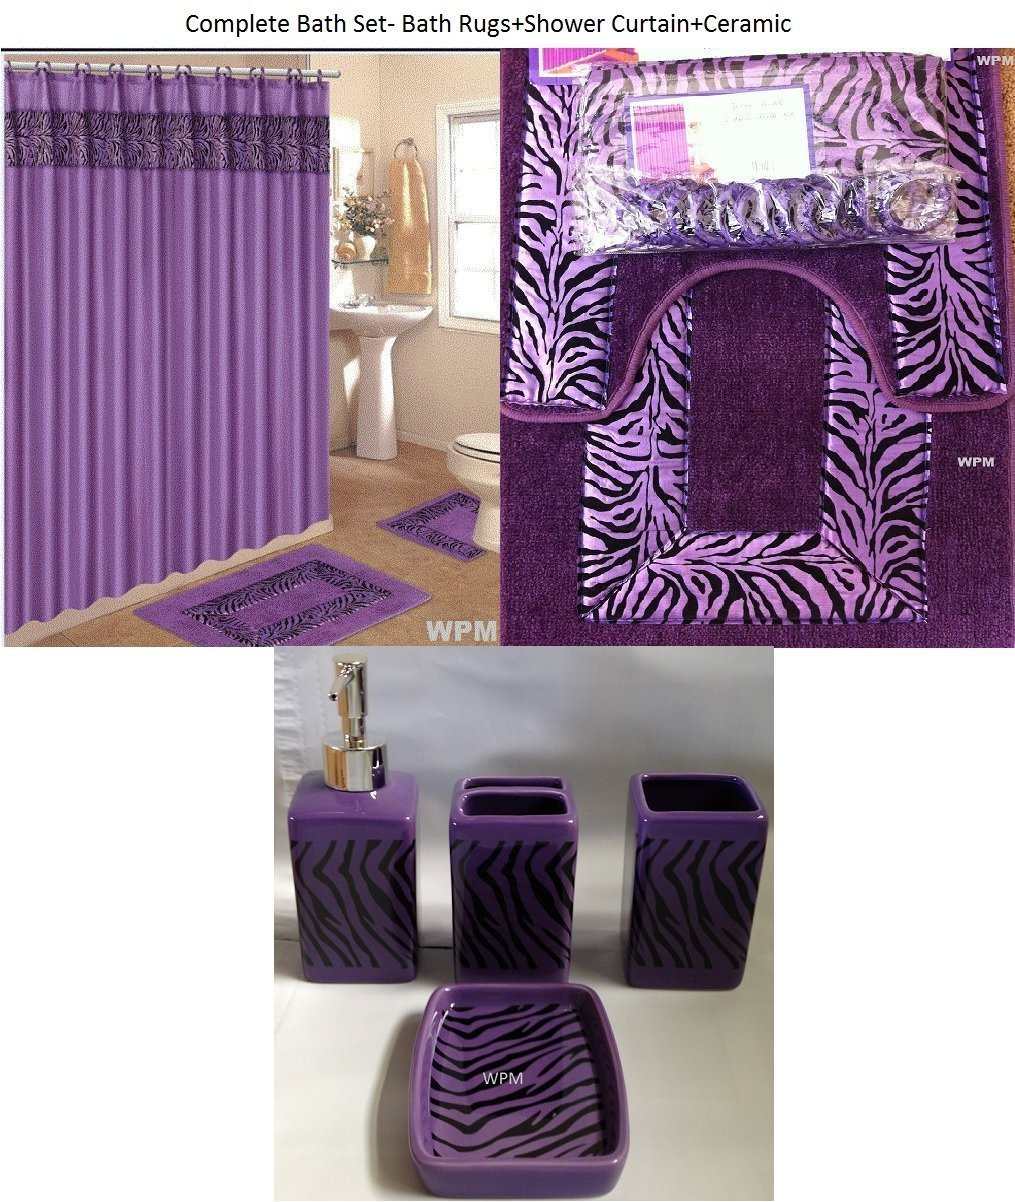 Buy 19 Piece Bath Accessory Set Purple Zebra Bathroom Rugs Shower